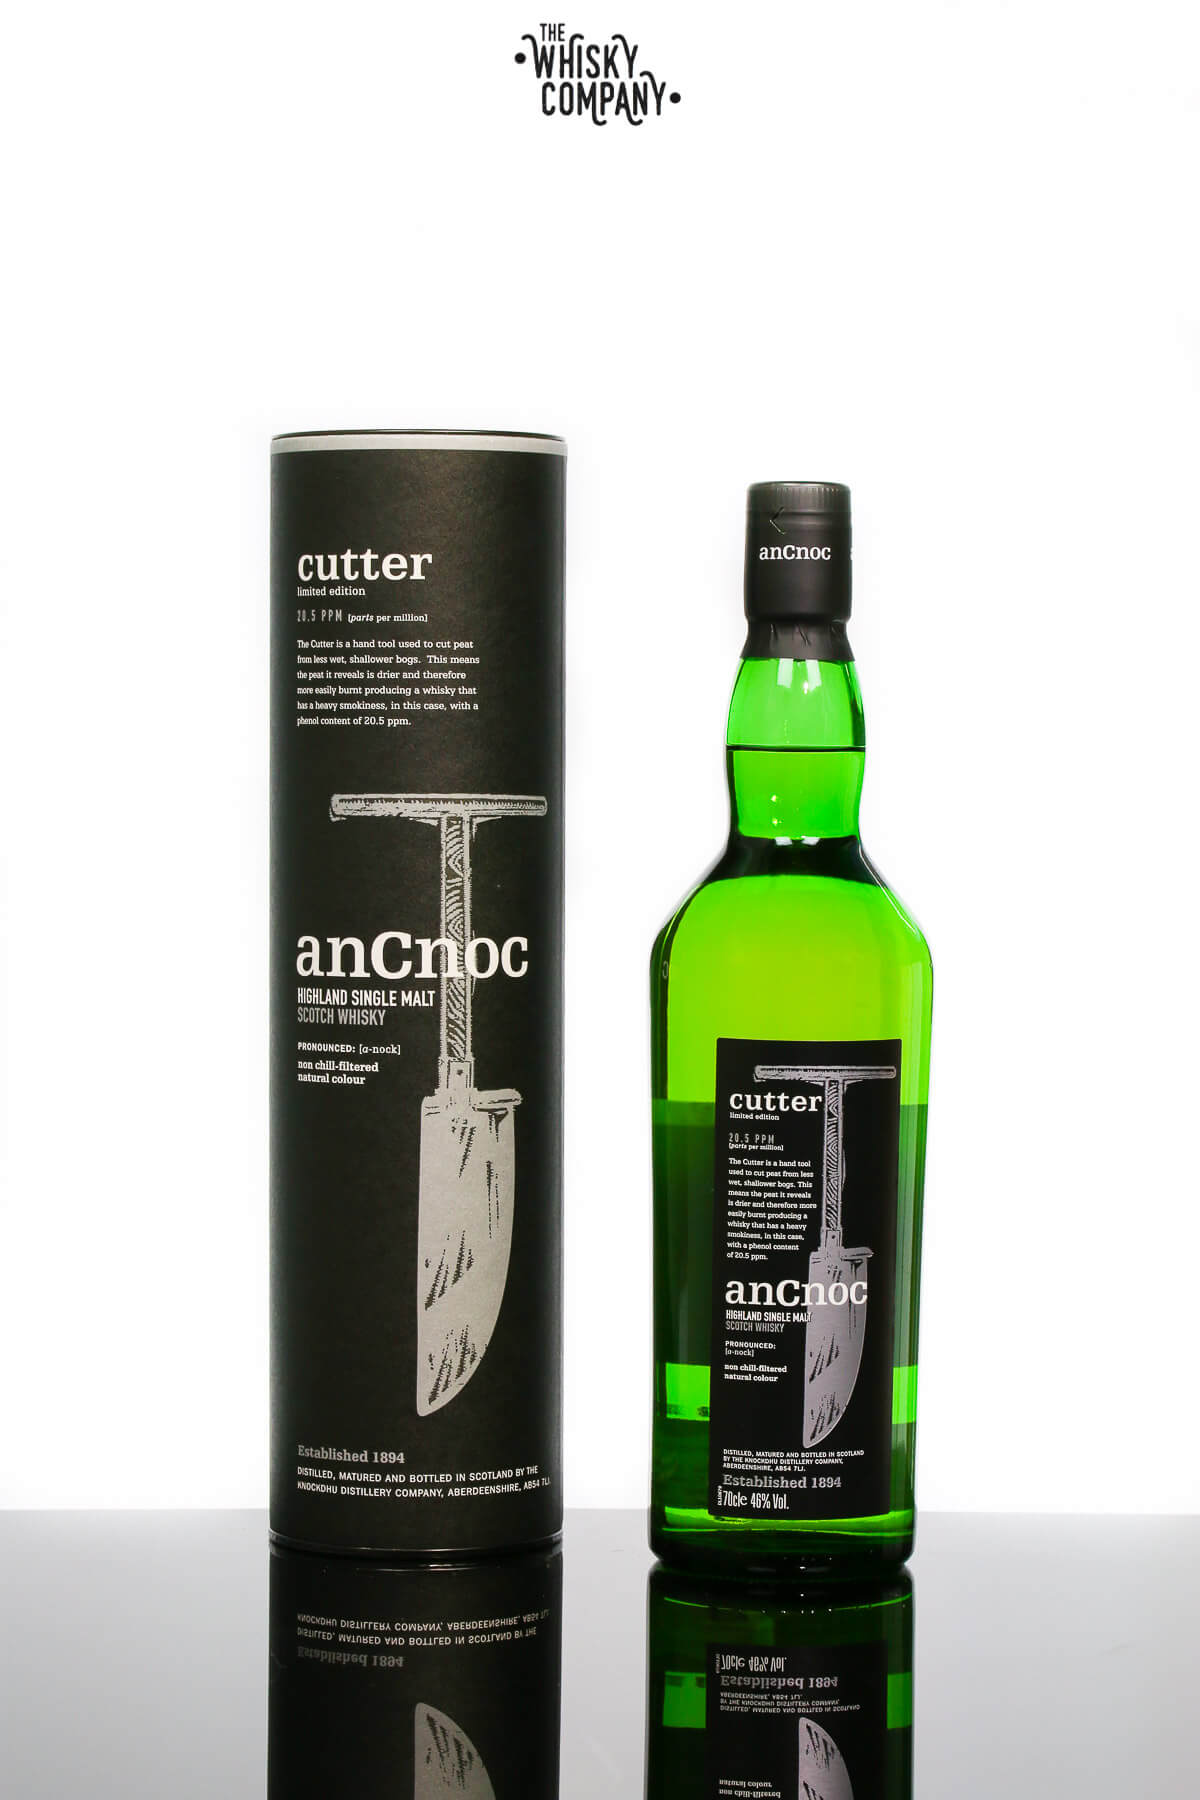 anCnoc Limited Edition Cutter Speyside Single Malt Scotch Whisky